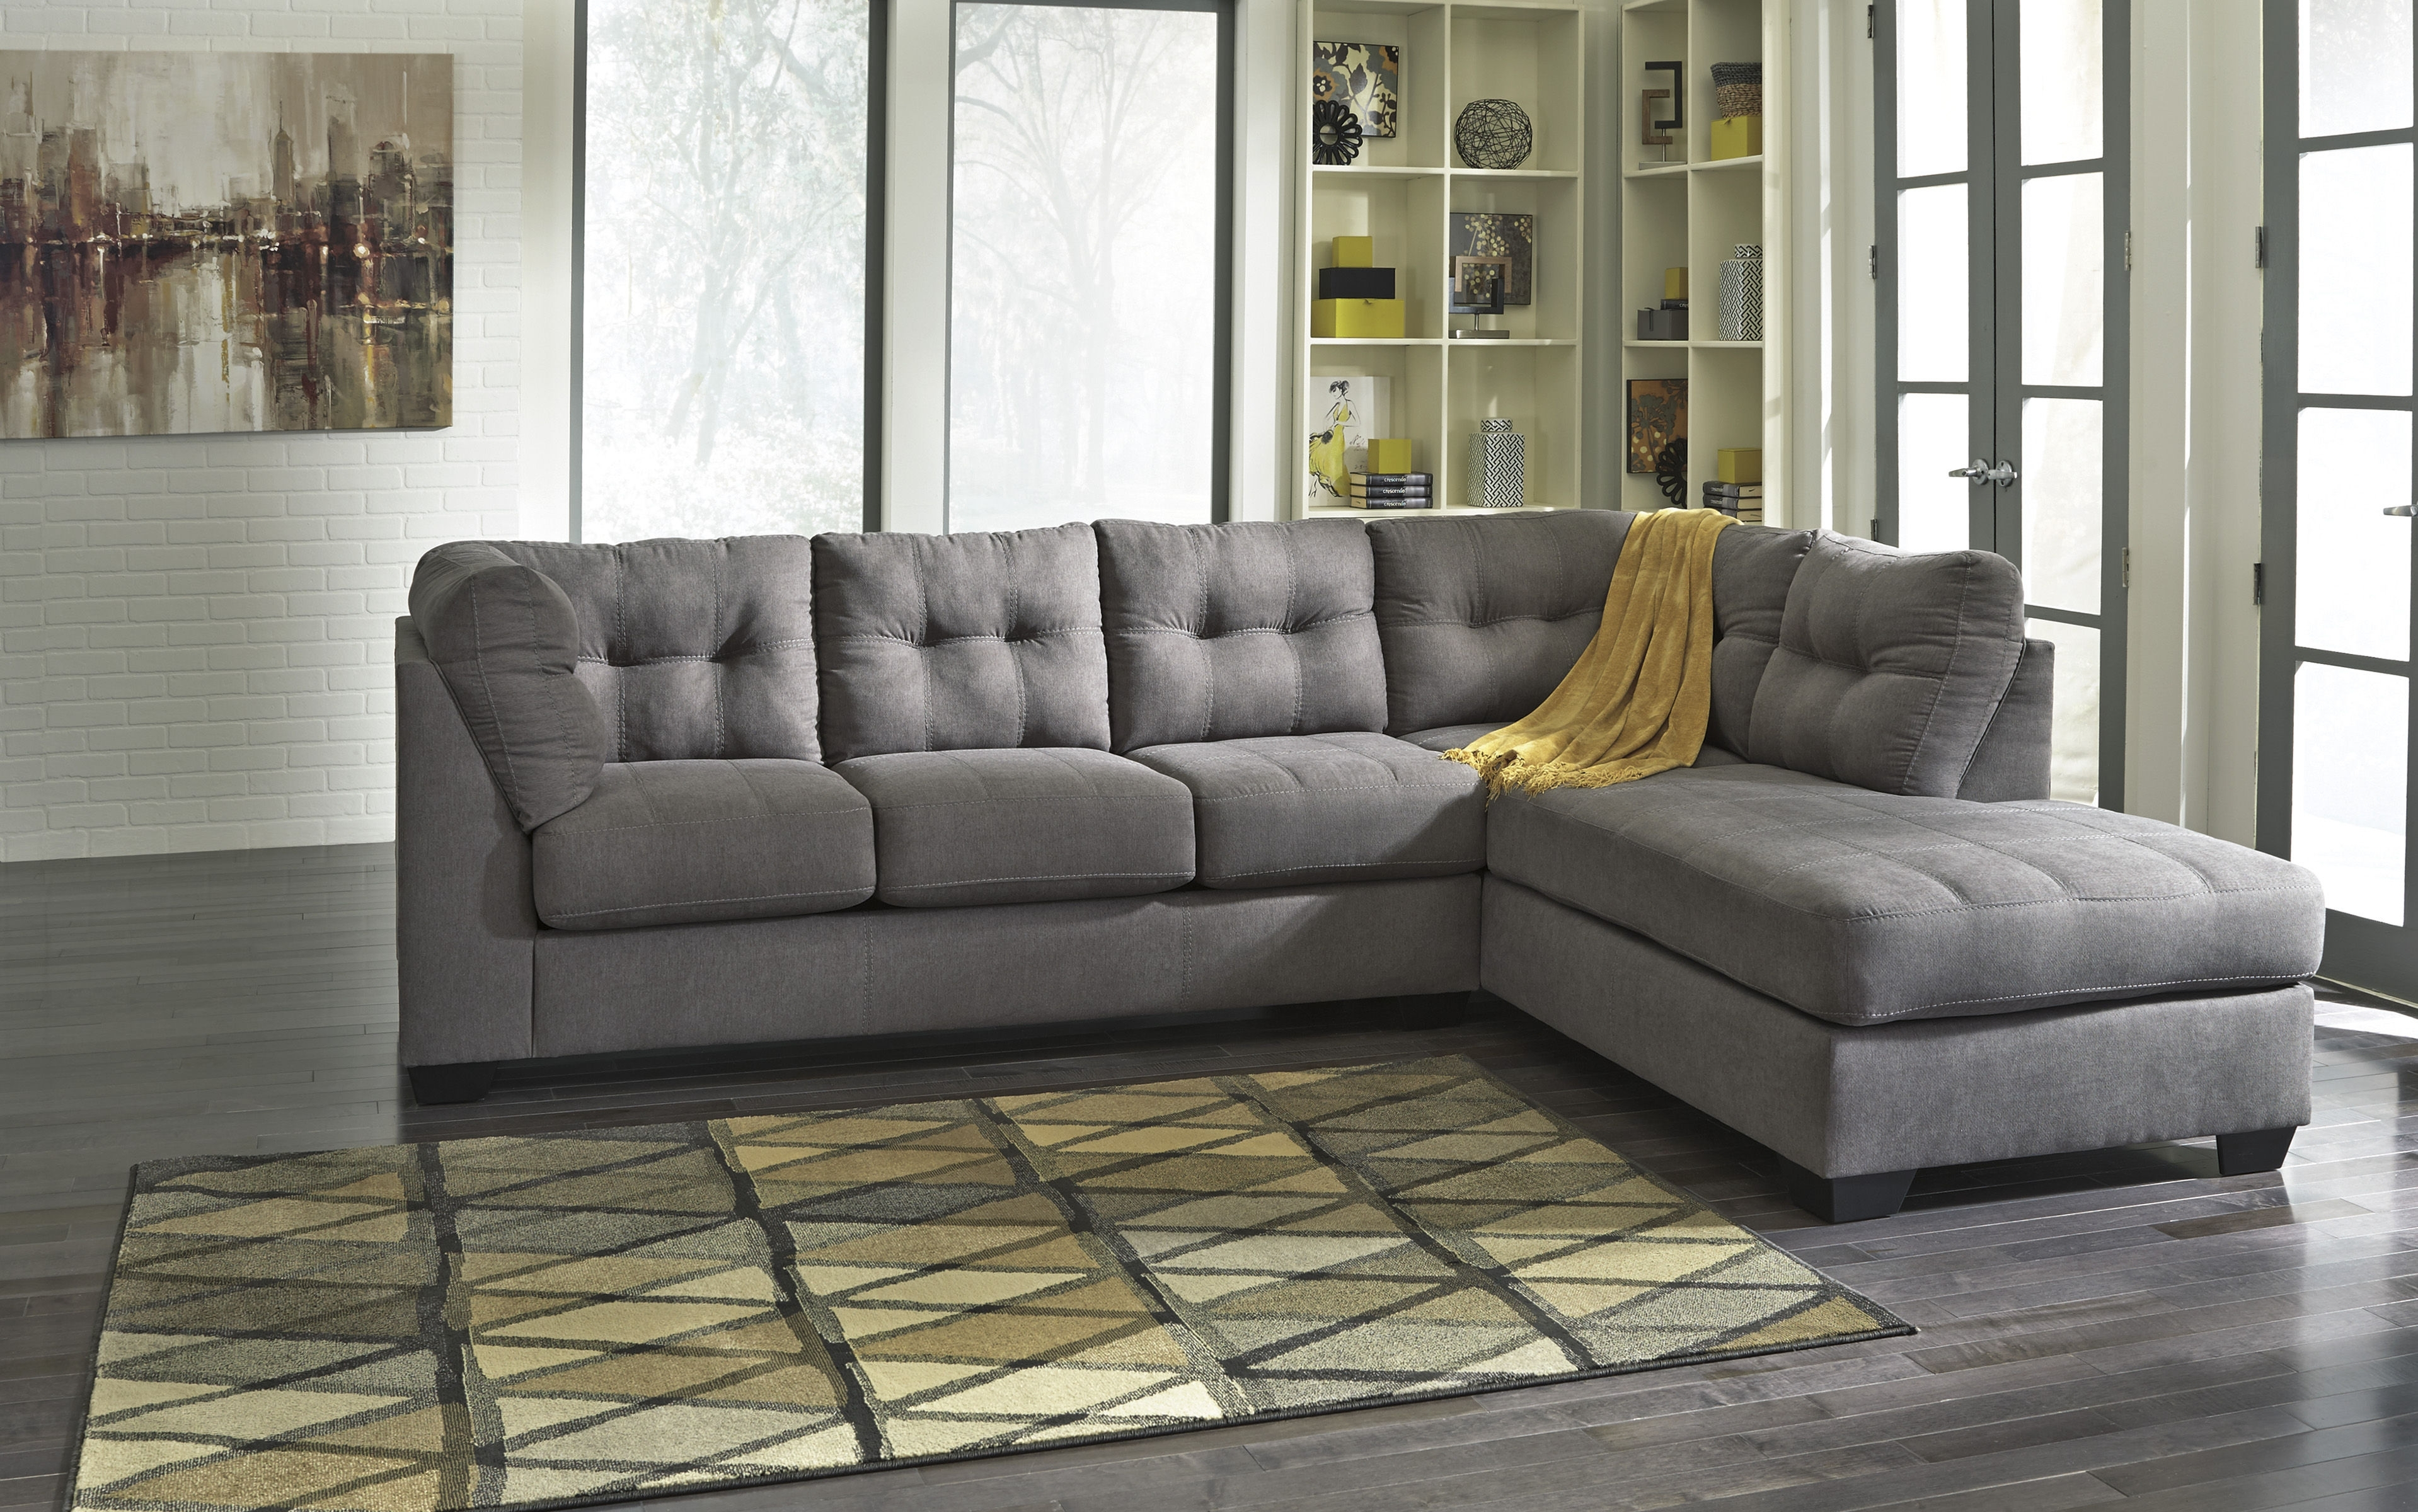 Ashley Furniture Maier Charcoal Raf Chaise Sectional | The Classy Home Within Lucy Grey 2 Piece Sectionals With Raf Chaise (Image 5 of 25)